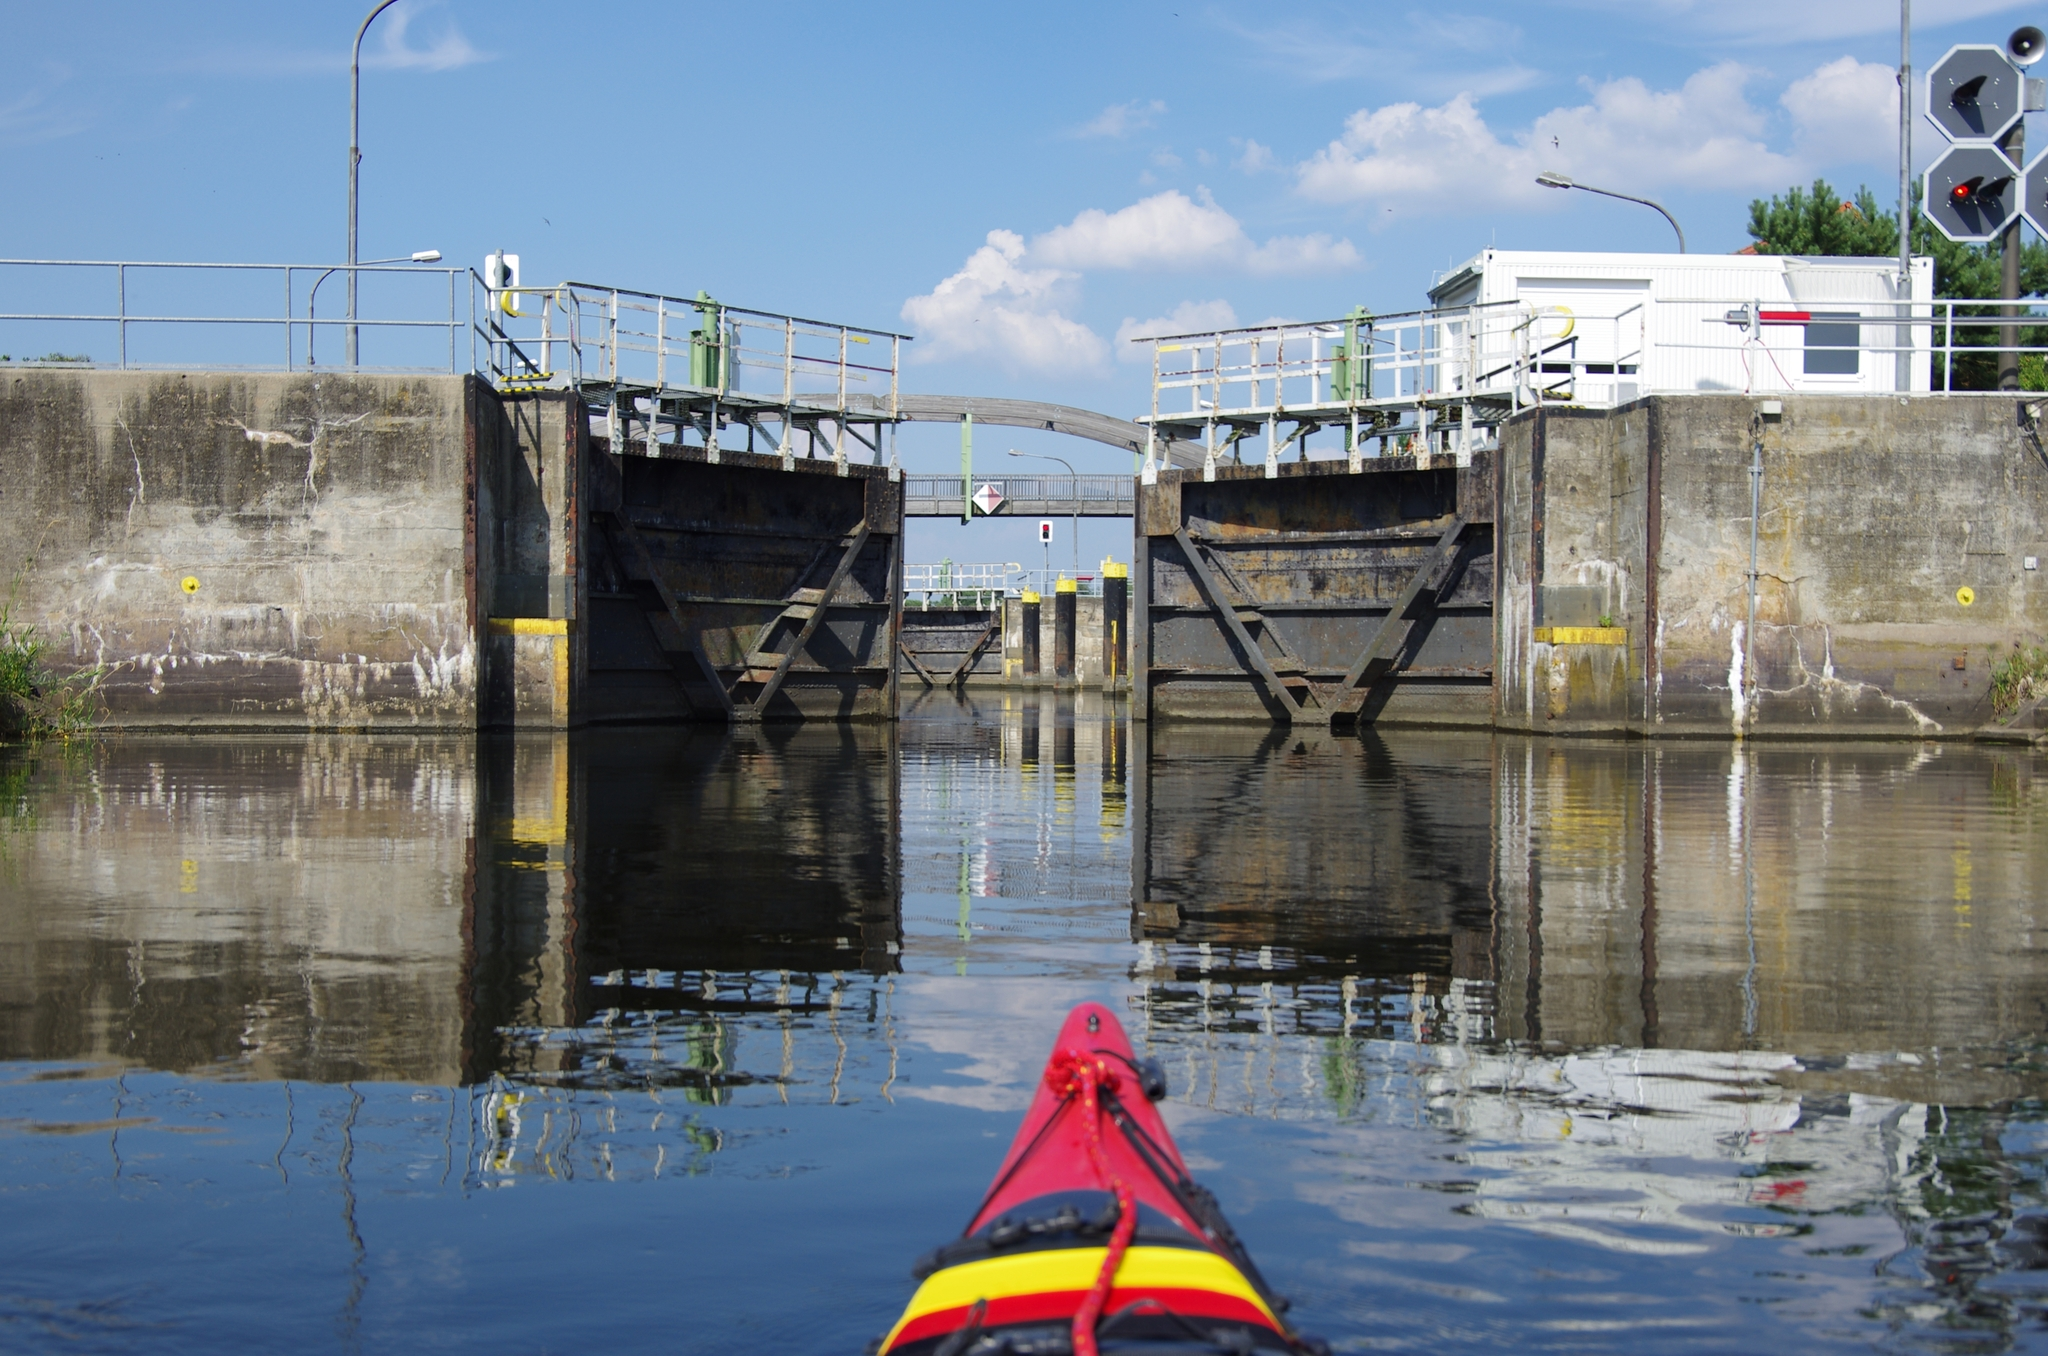 kayaking-odra-east-and-west_15-12-11_25-07-2016